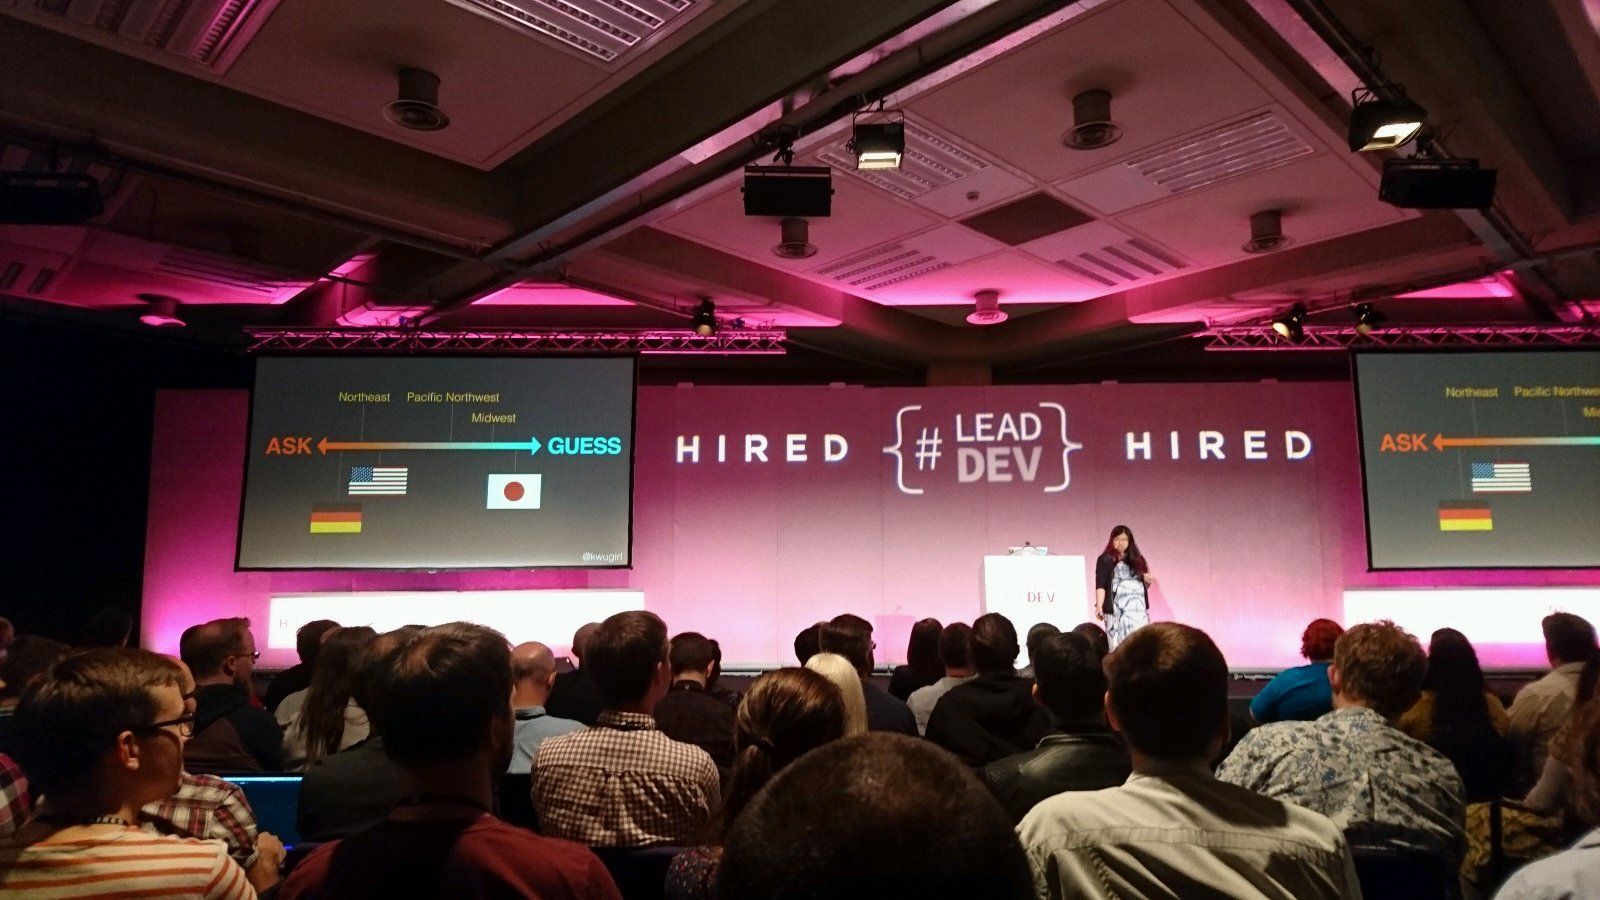 I'm very GUESS socially, but super comfortable as ASK professionally. I think this is good?  @kwugirl at #leaddev https://t.co/iRcAVmwACy